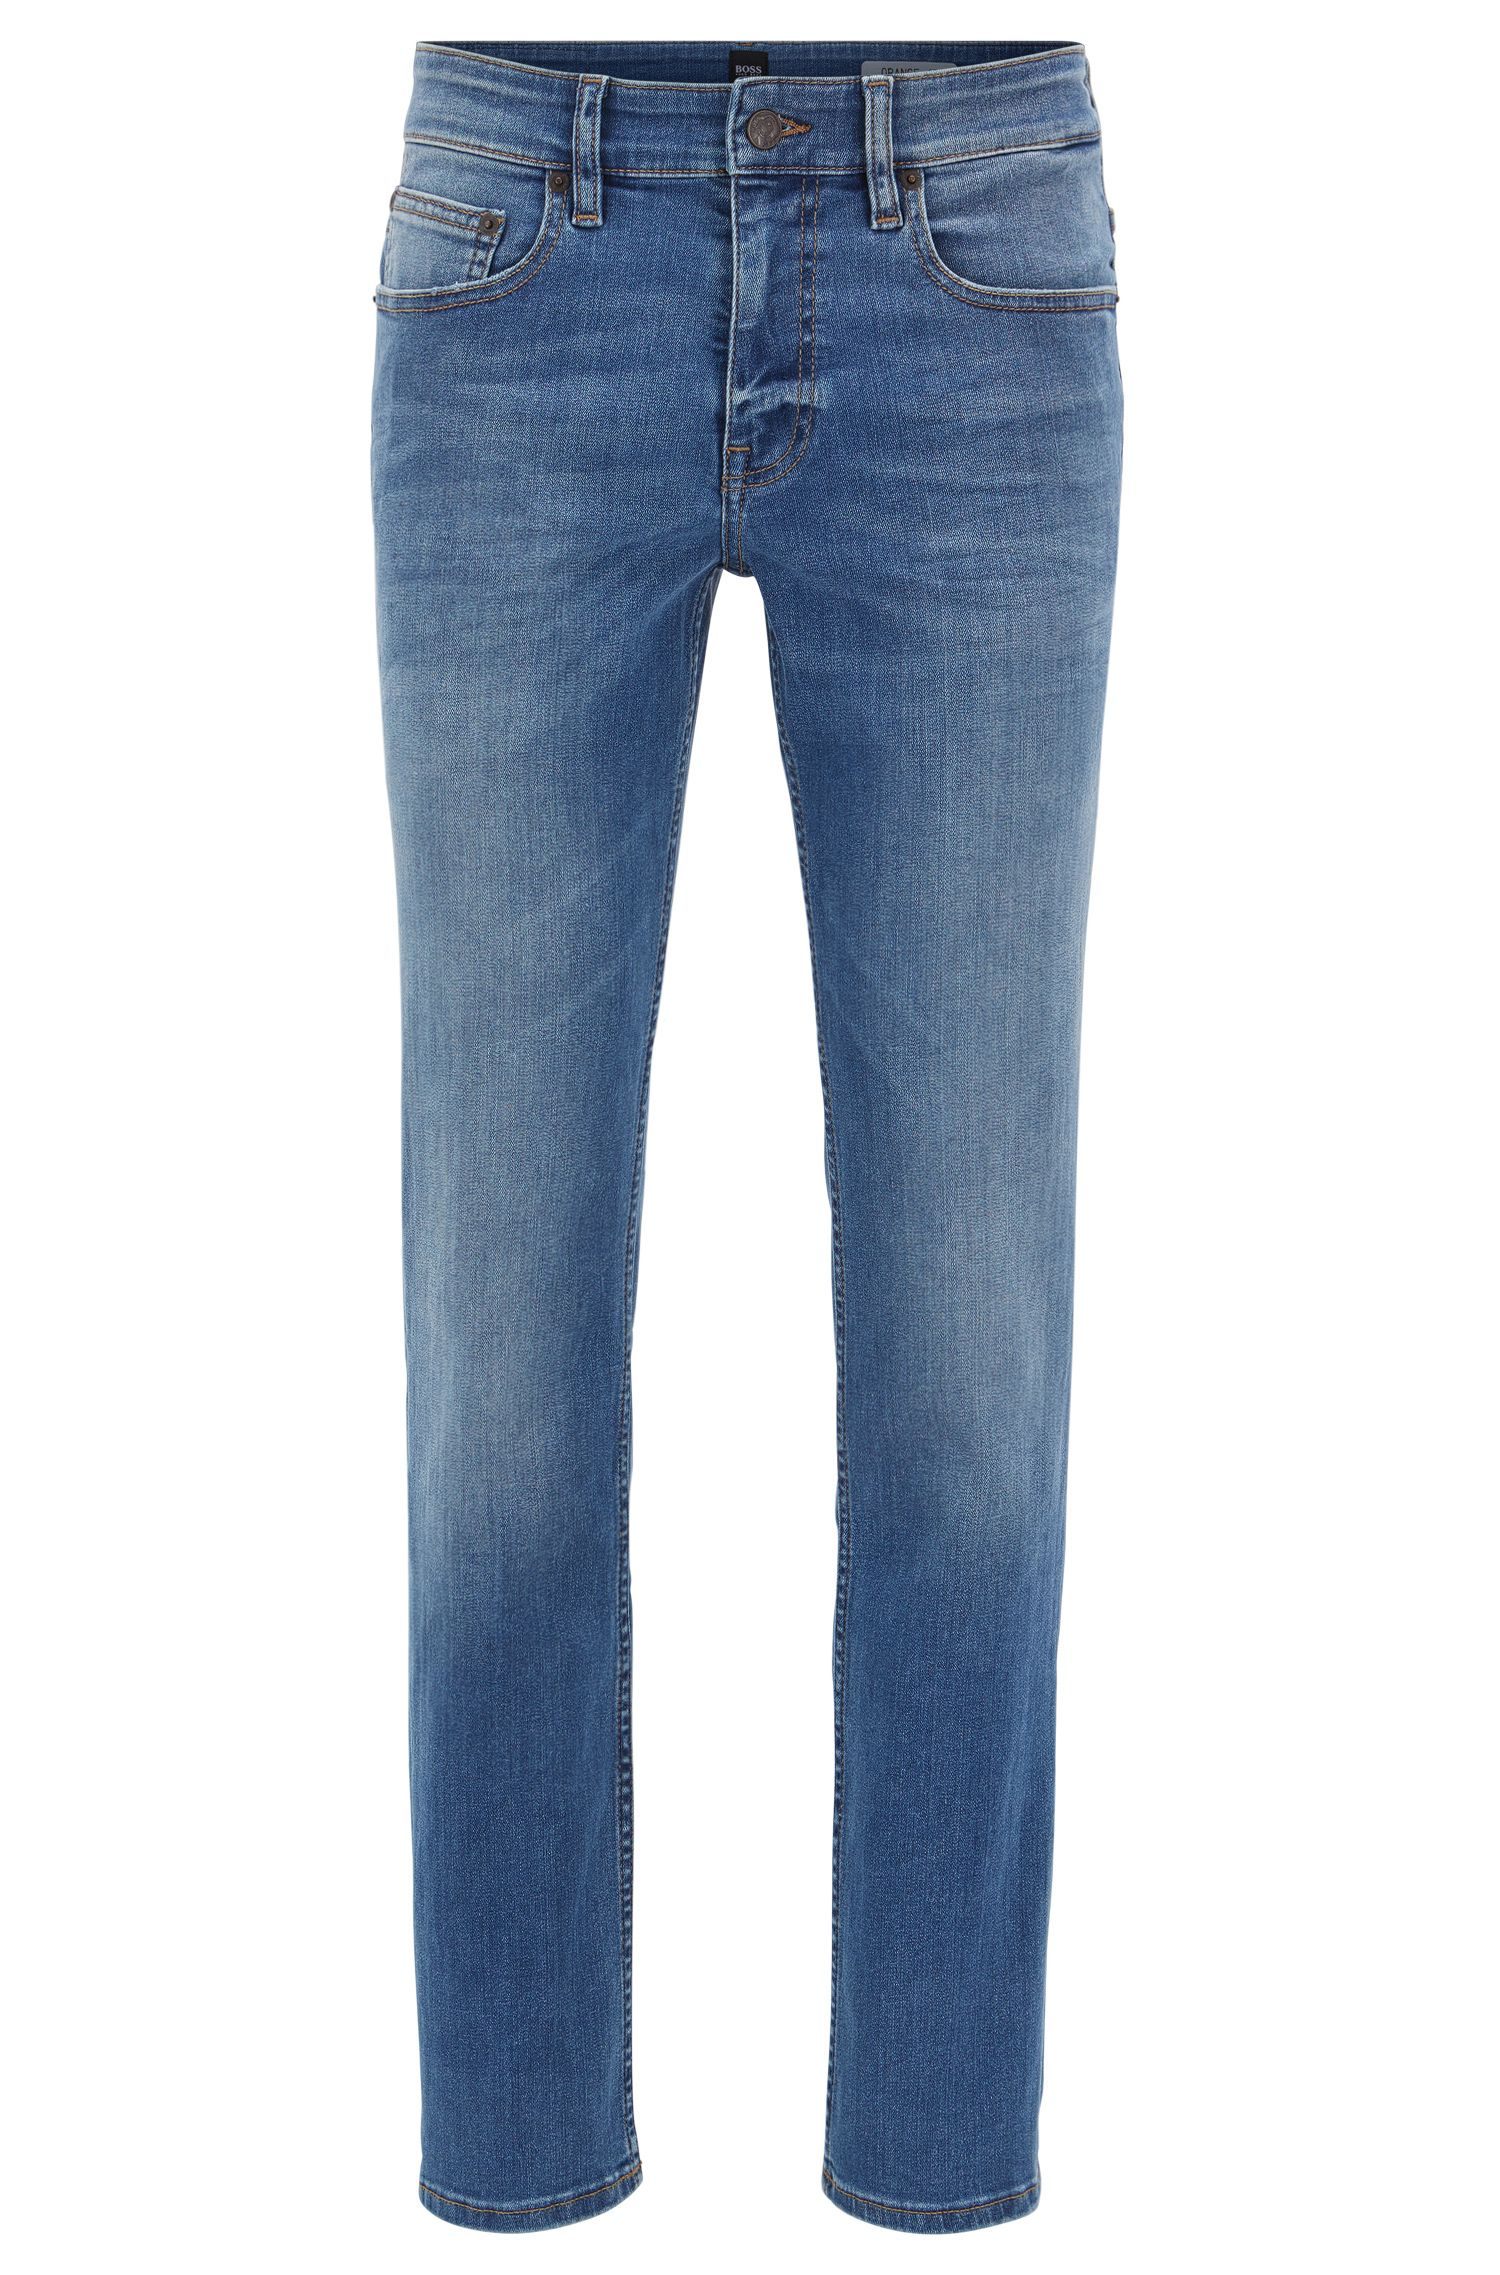 Slim-fit jeans in super-stretch mid-blue denim